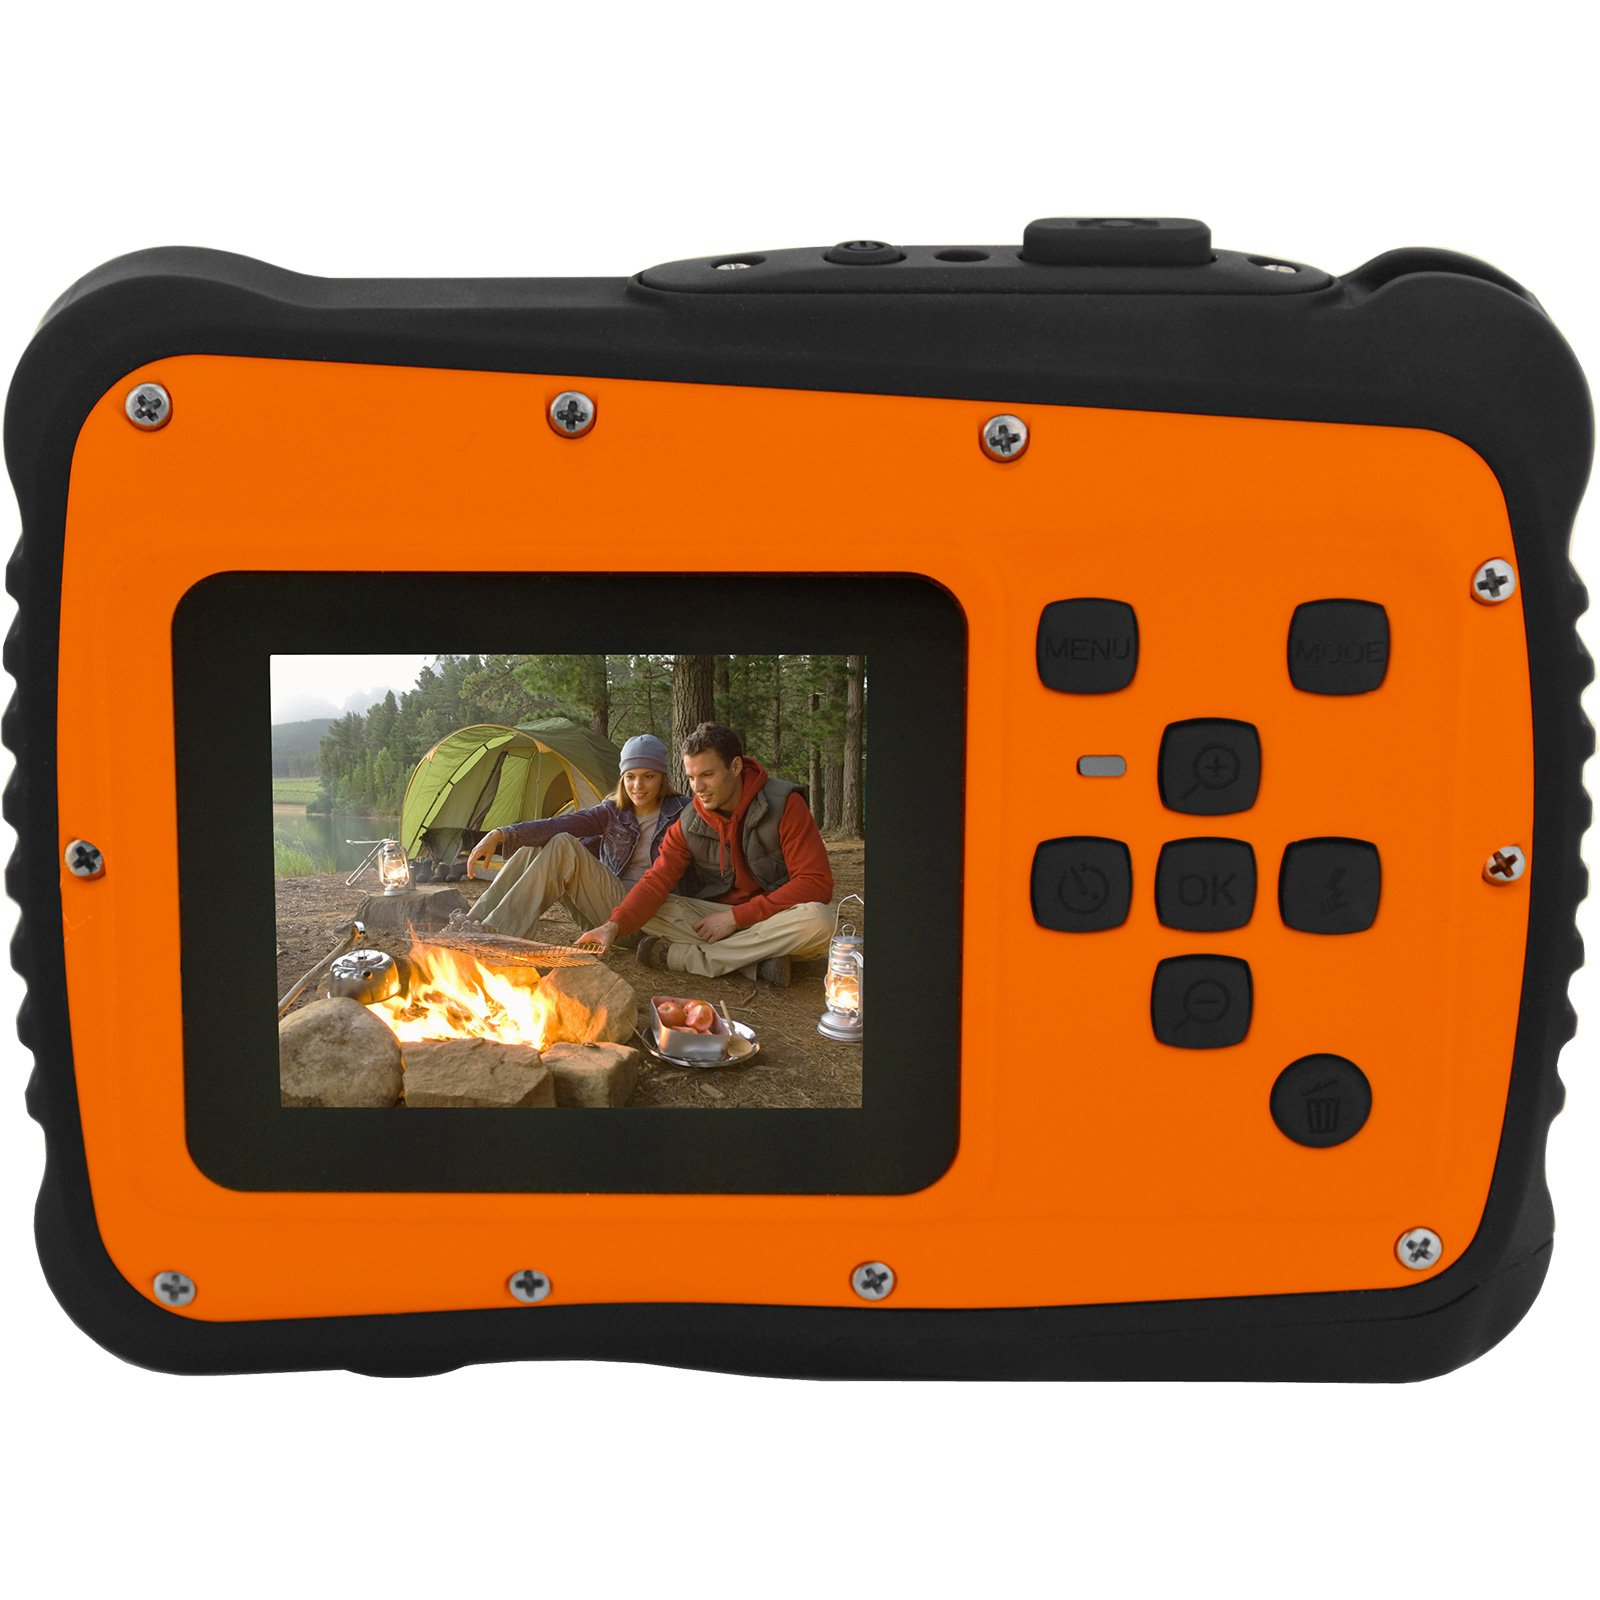 Coleman Orange C6WP MiniXtreme HD Video Waterproof Digital Camera Kit